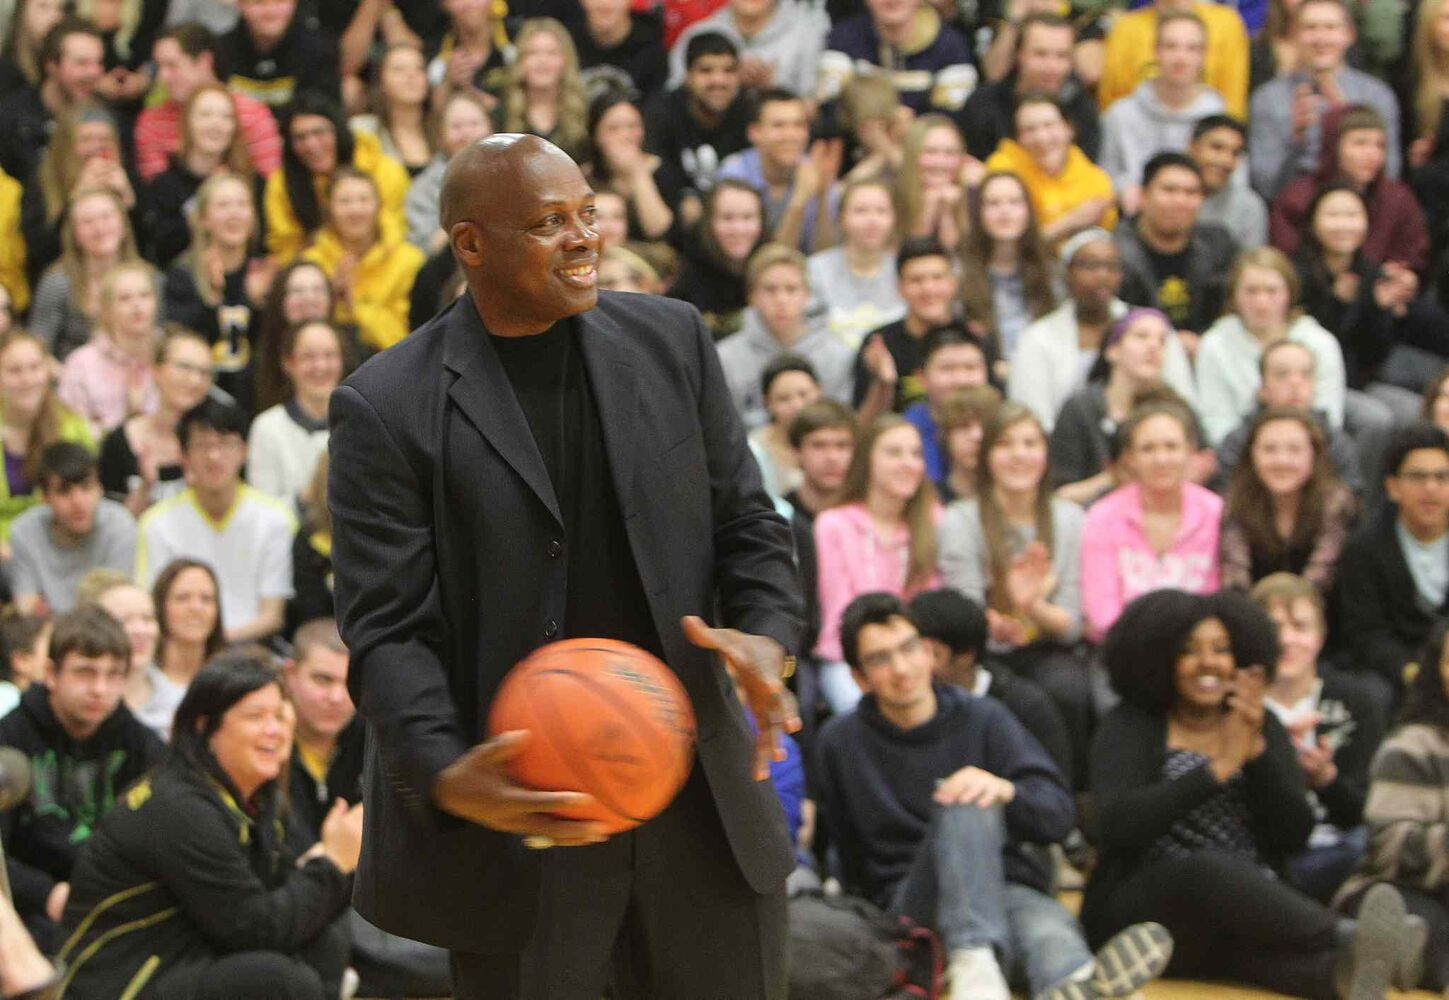 Ken Carter encouraged students to stay in school, to help others and to keep trying to improve during his talk at Dakota Collegiate Thursday.